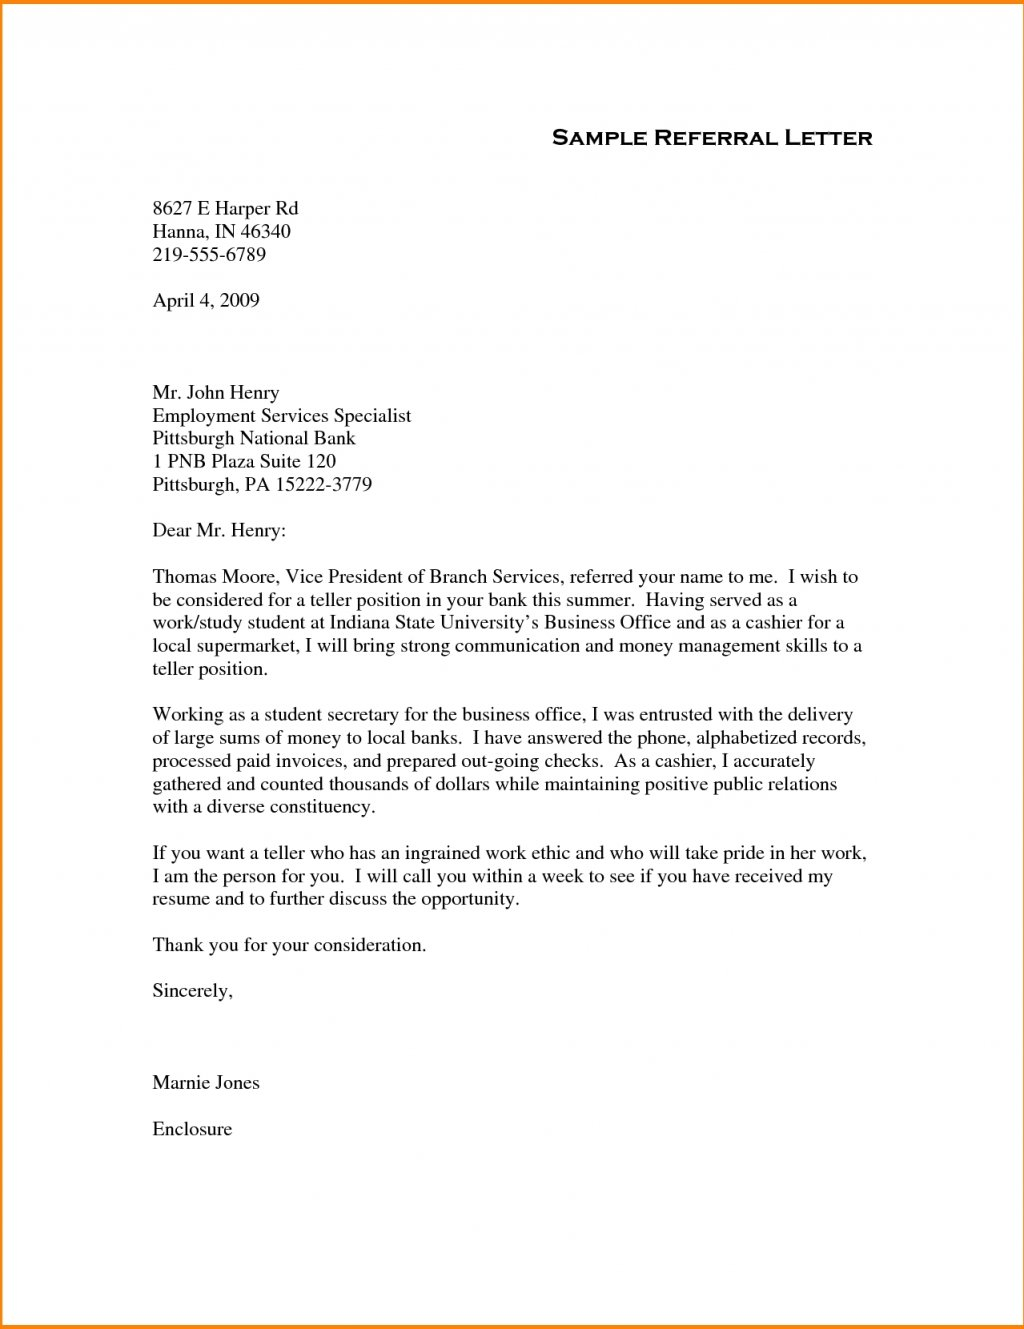 Medical Reference Letter Template - Sample Business Letter Templates Medical School Fundraising Medical